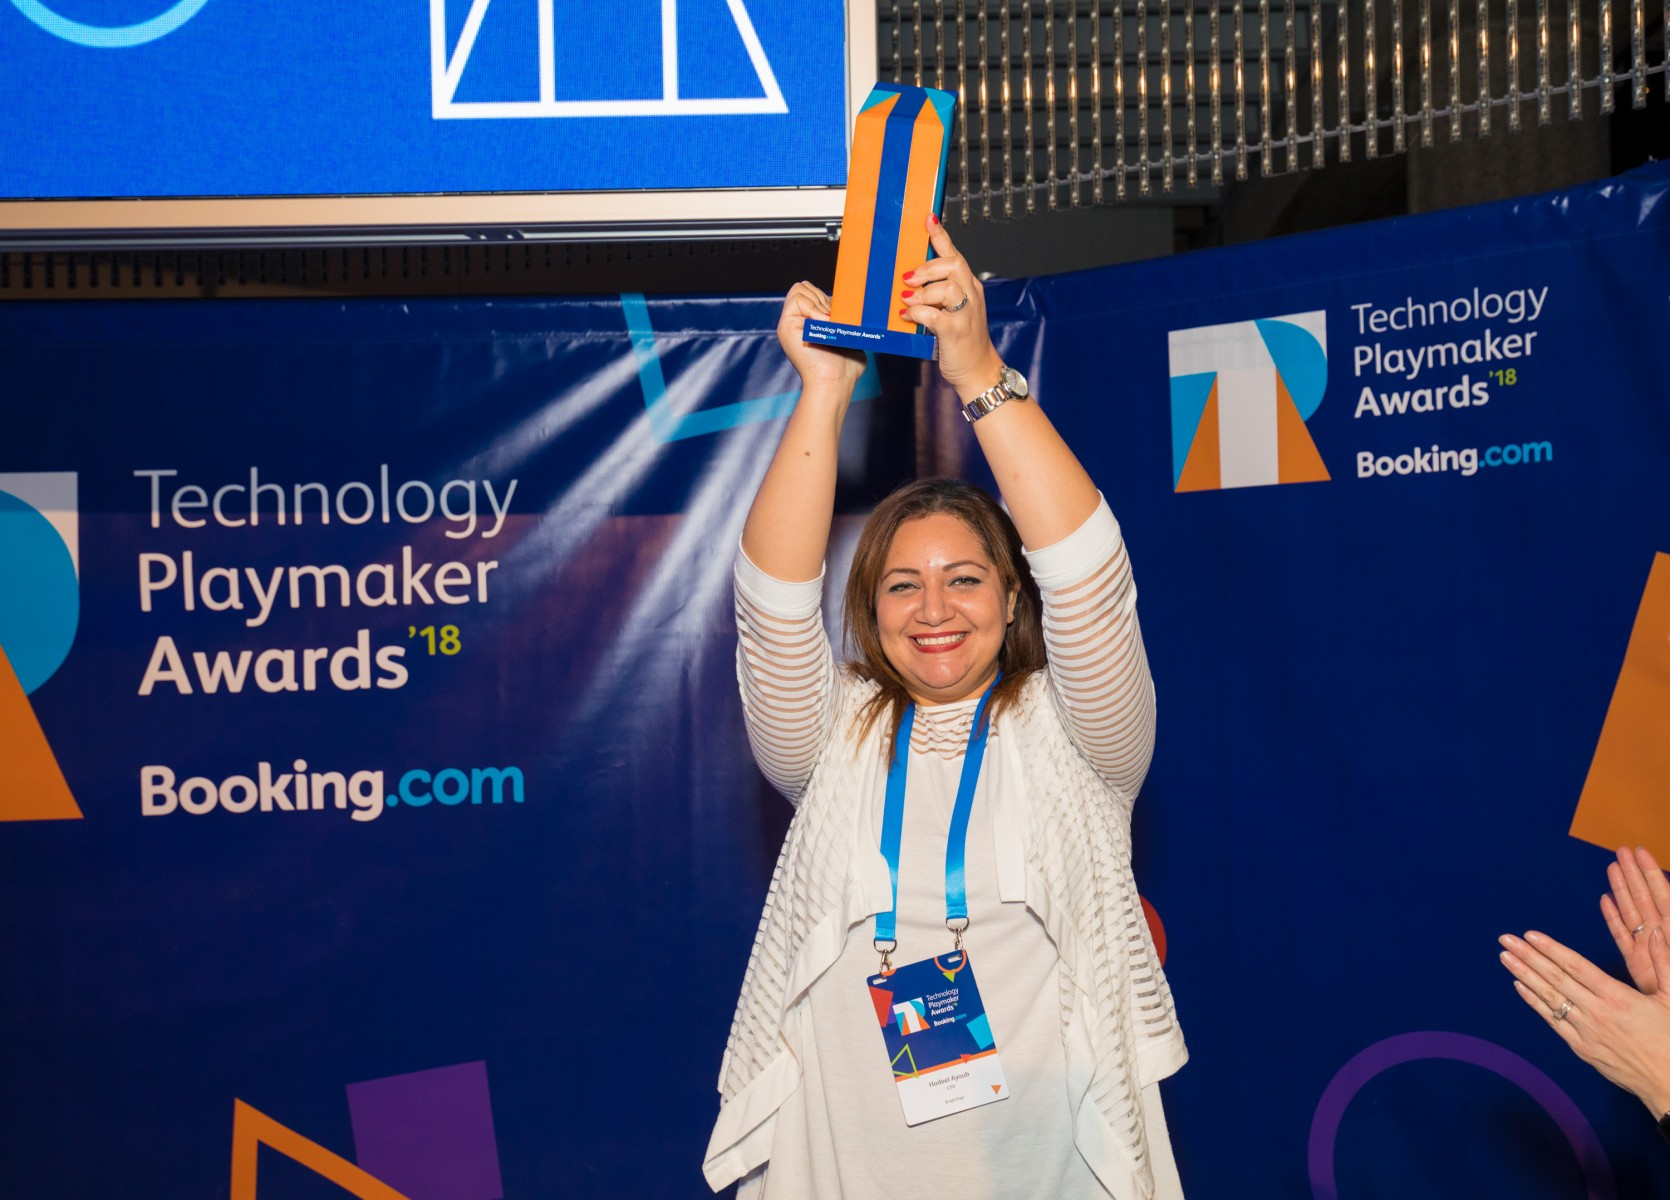 Hadeel Ayoub, 2018 Tech Playmaker Awards Winner